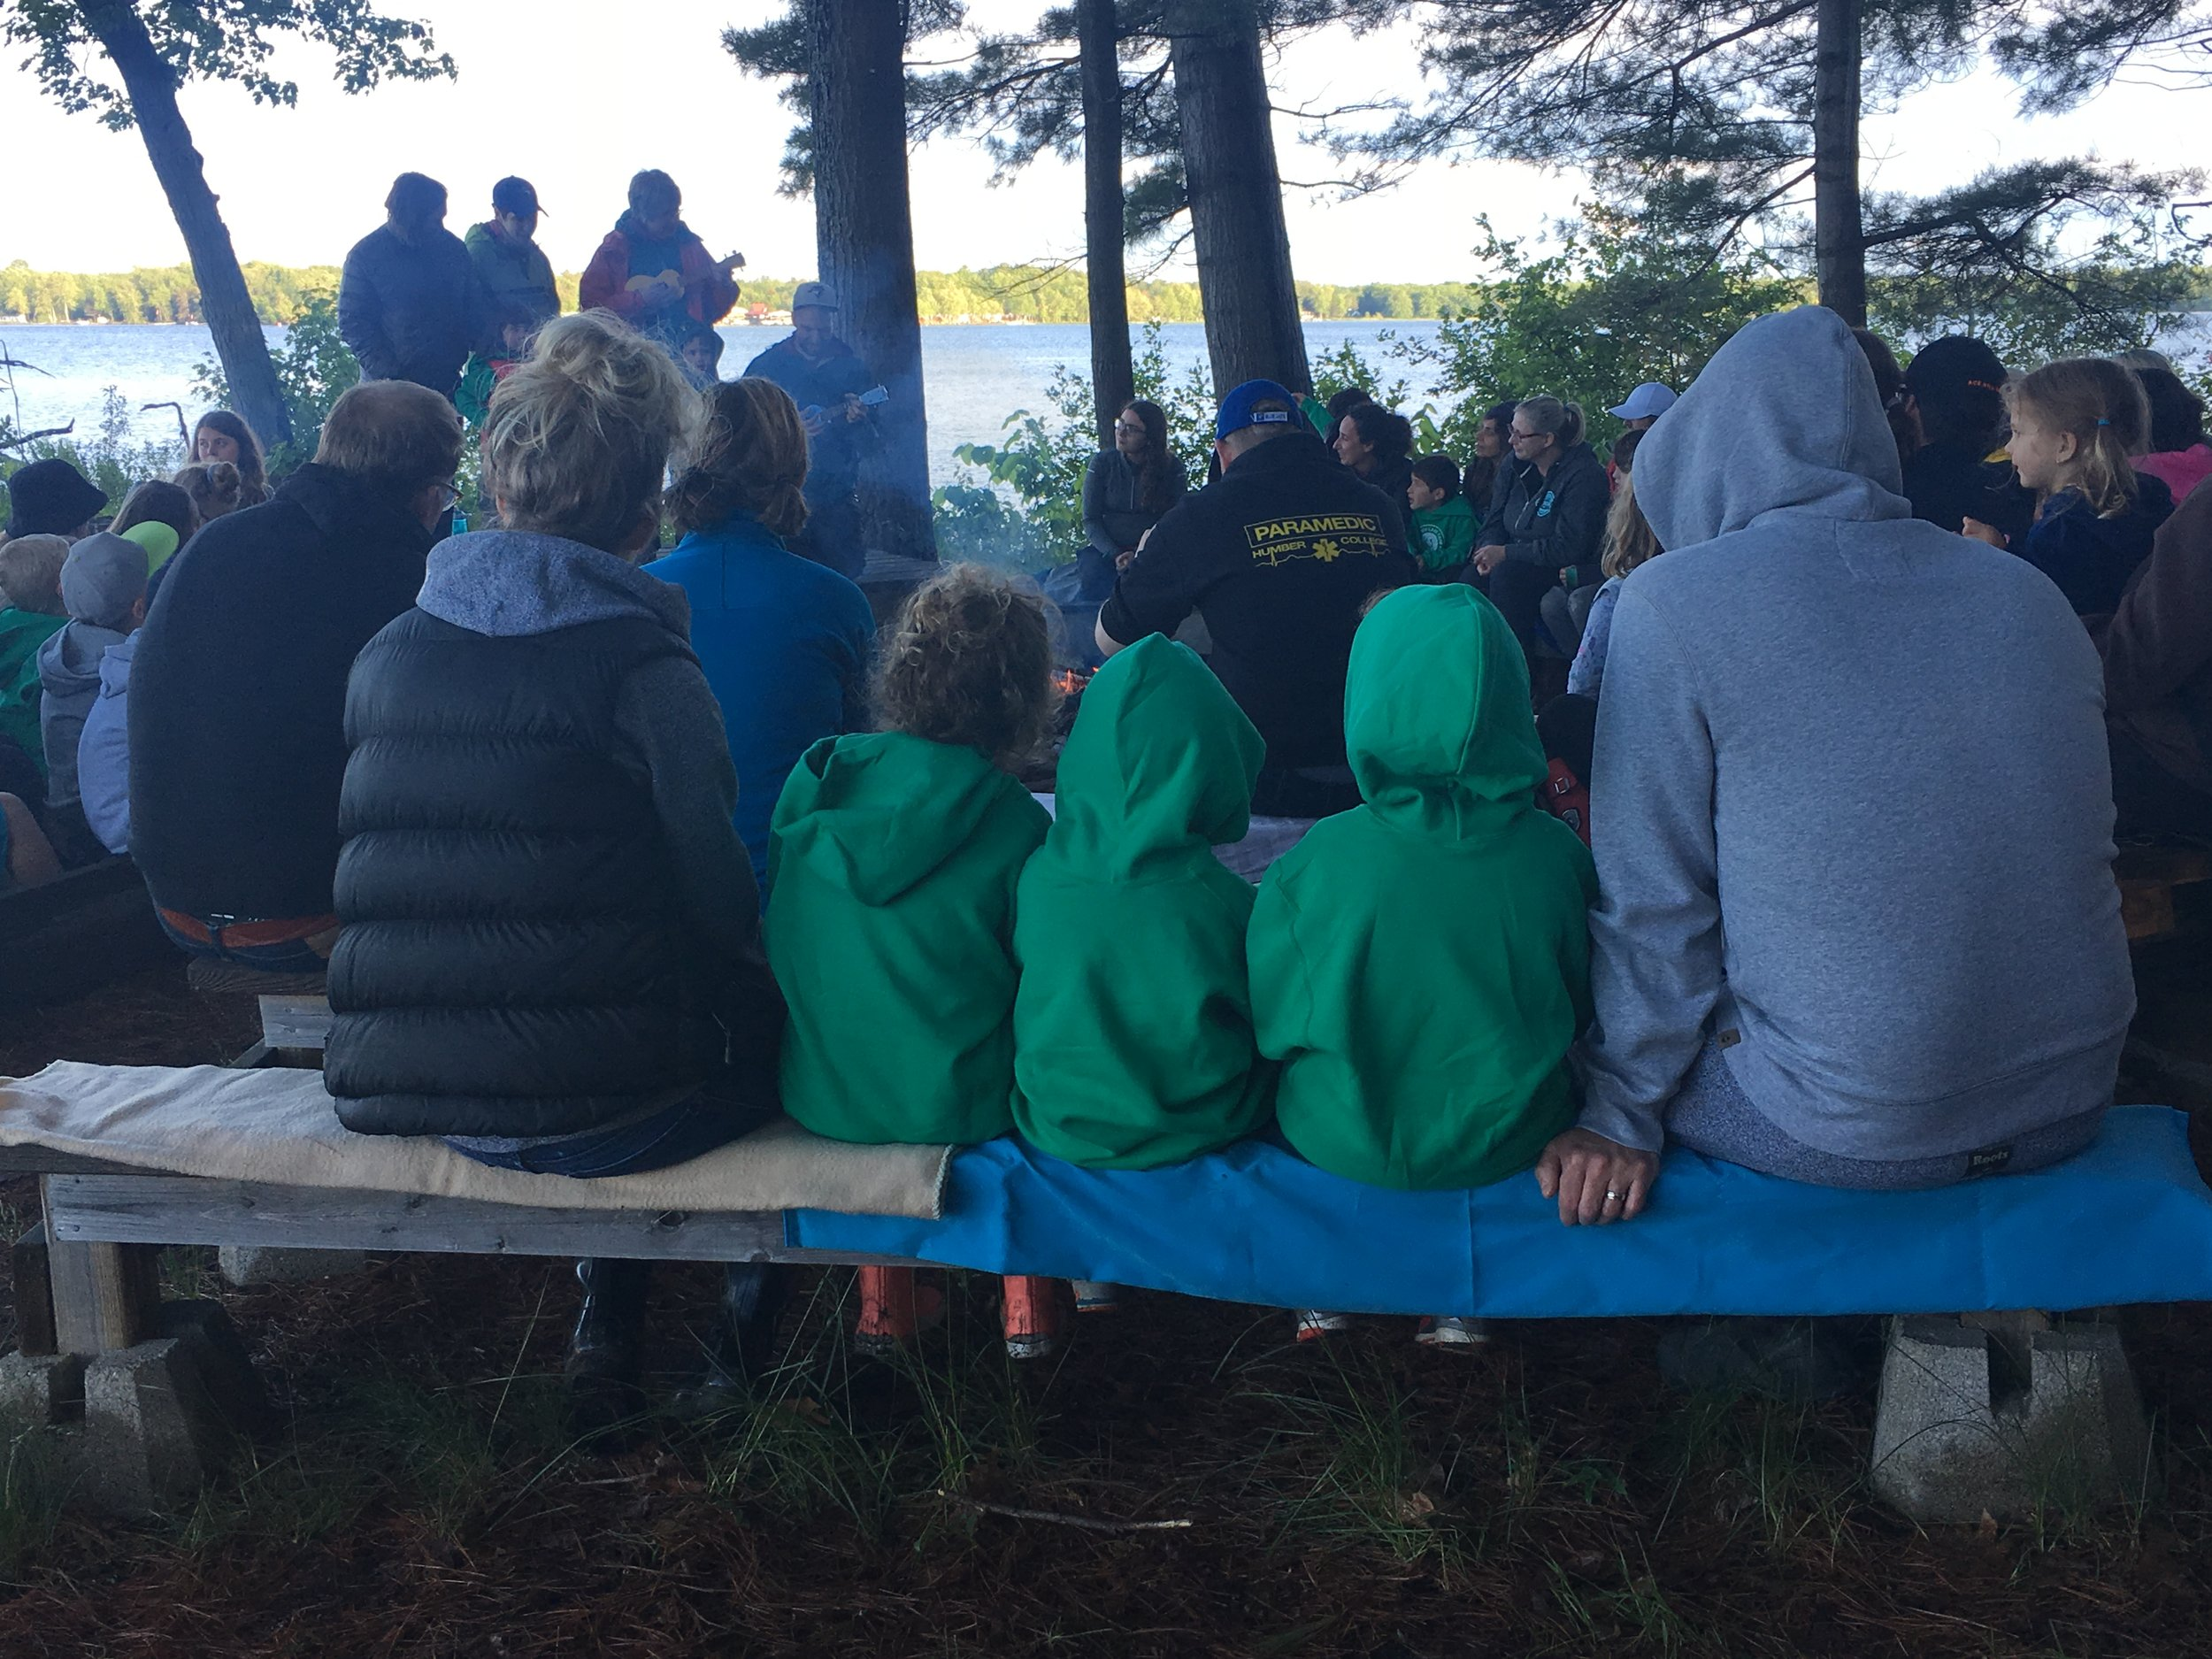 Family Camp - Click Here to View More Photos